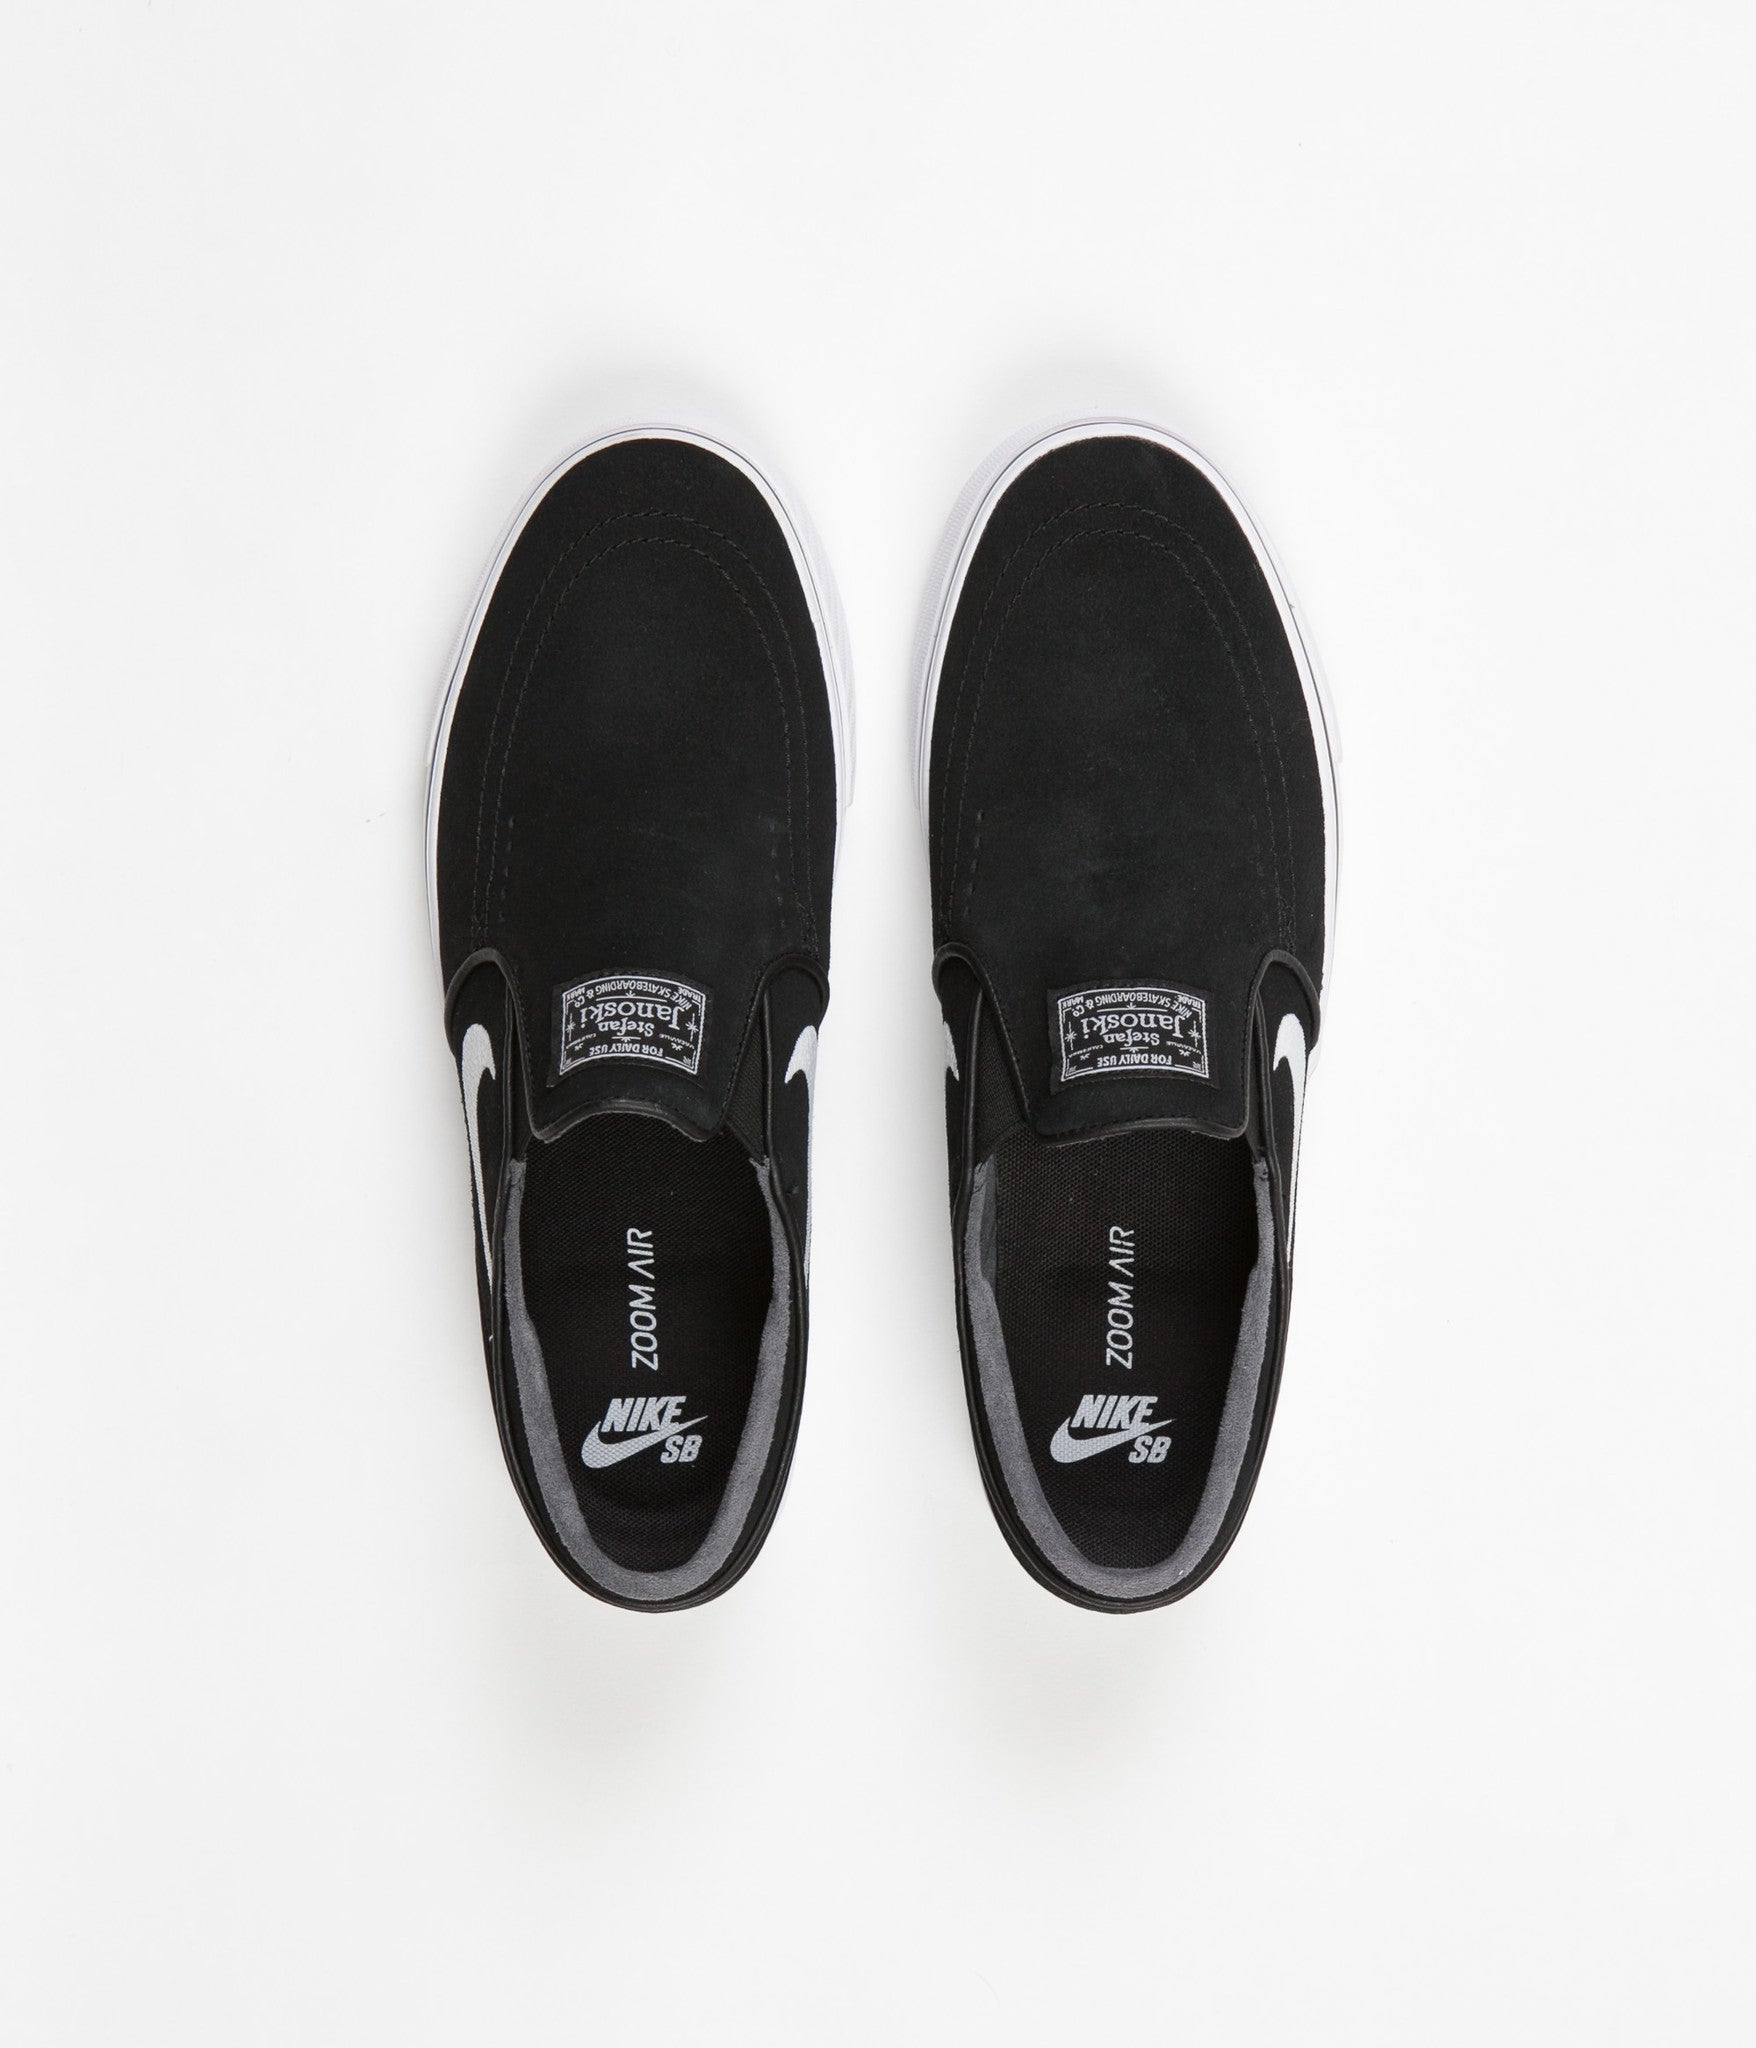 Nike SB Stefan Janoski Slip On Shoes - Black / White